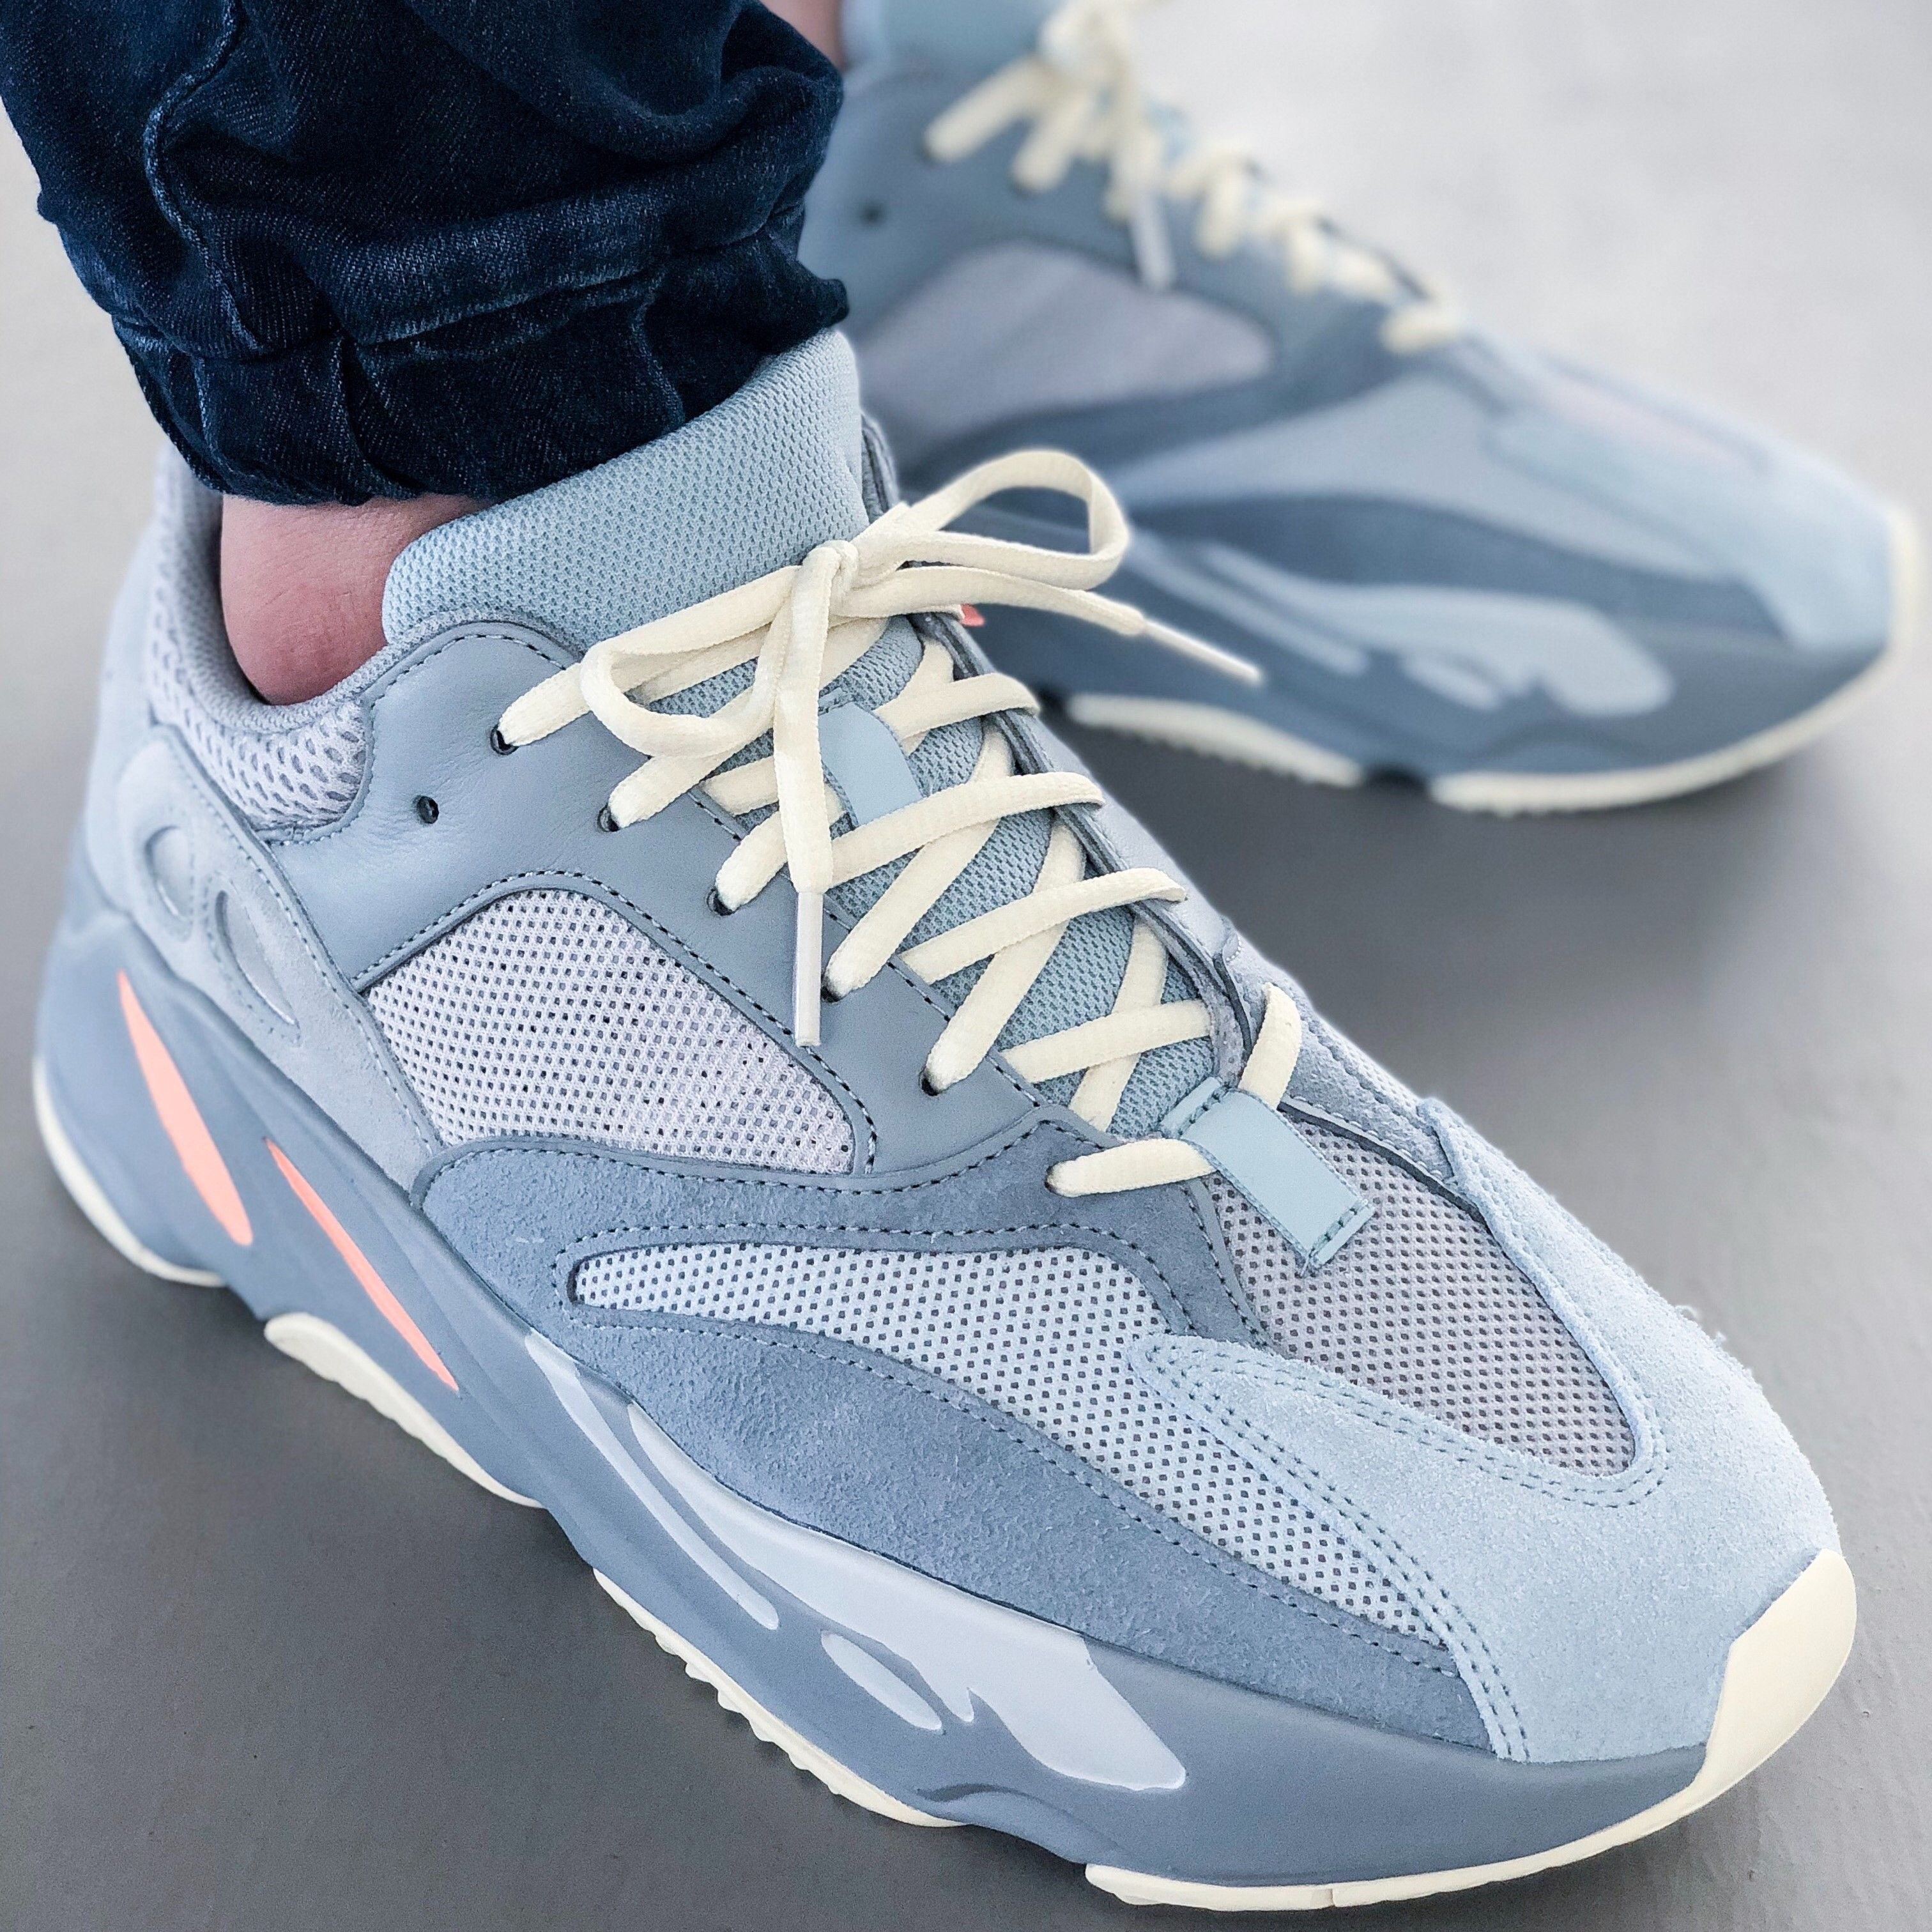 f5f2bacc3d892 Where to buy shoe laces for the adidas Yeezy 700